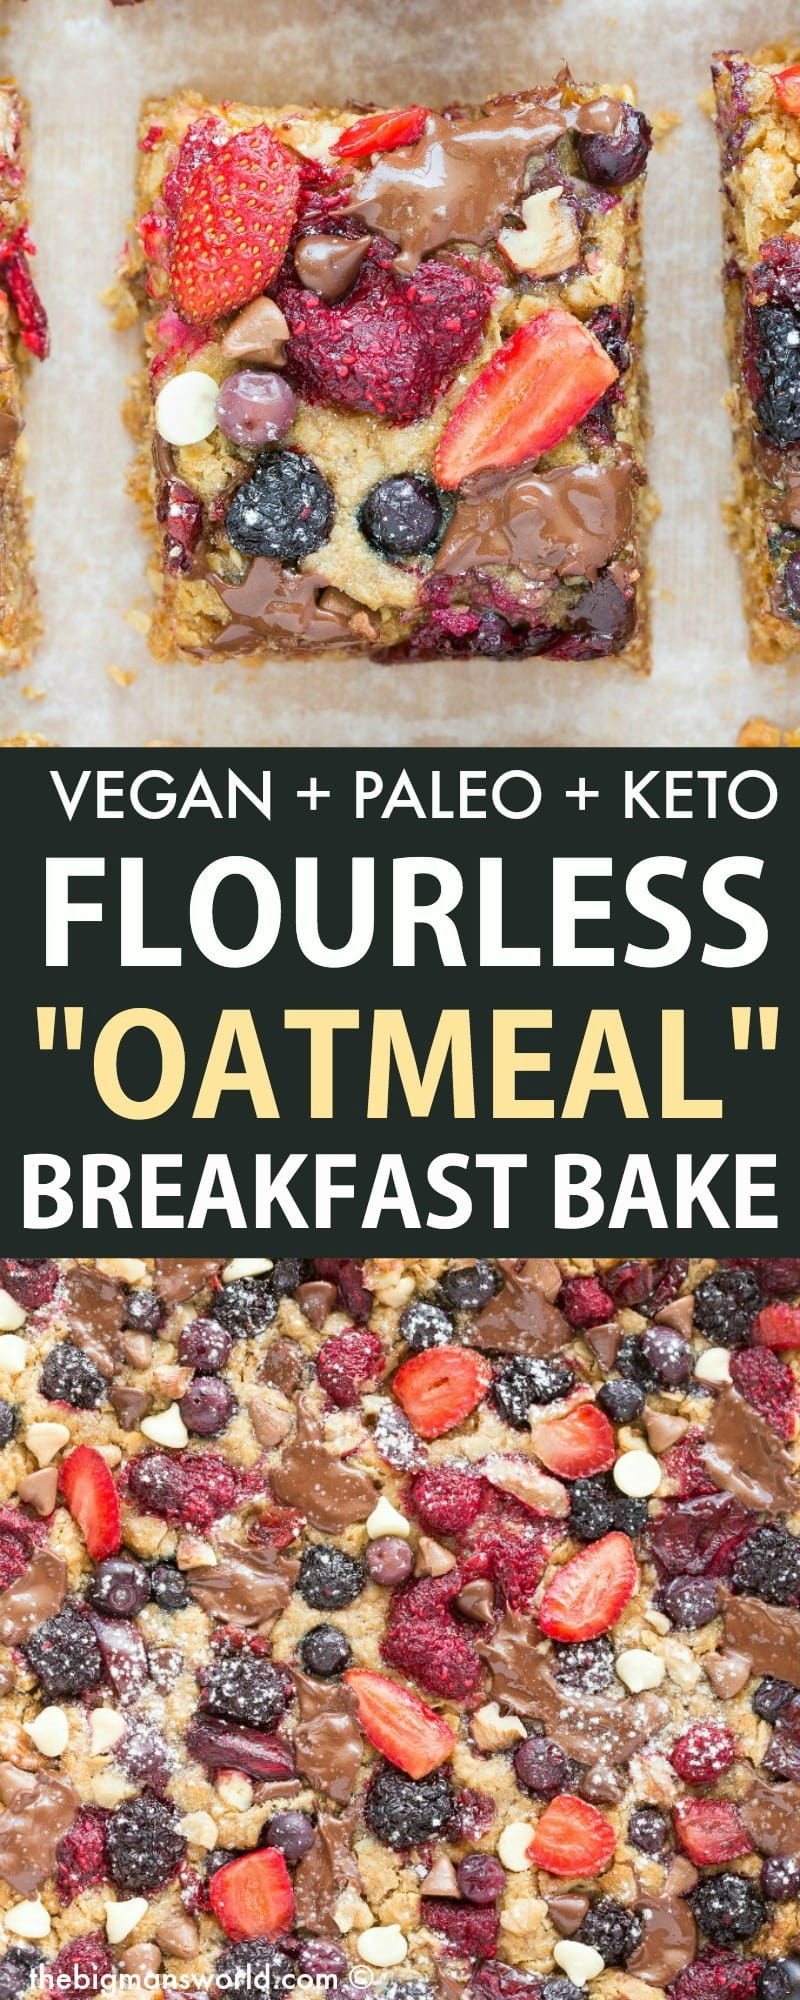 Baked Oatmeal Breakfast Casserole is a healthy vegan and gluten free breakfast, with a keto and low carb option!